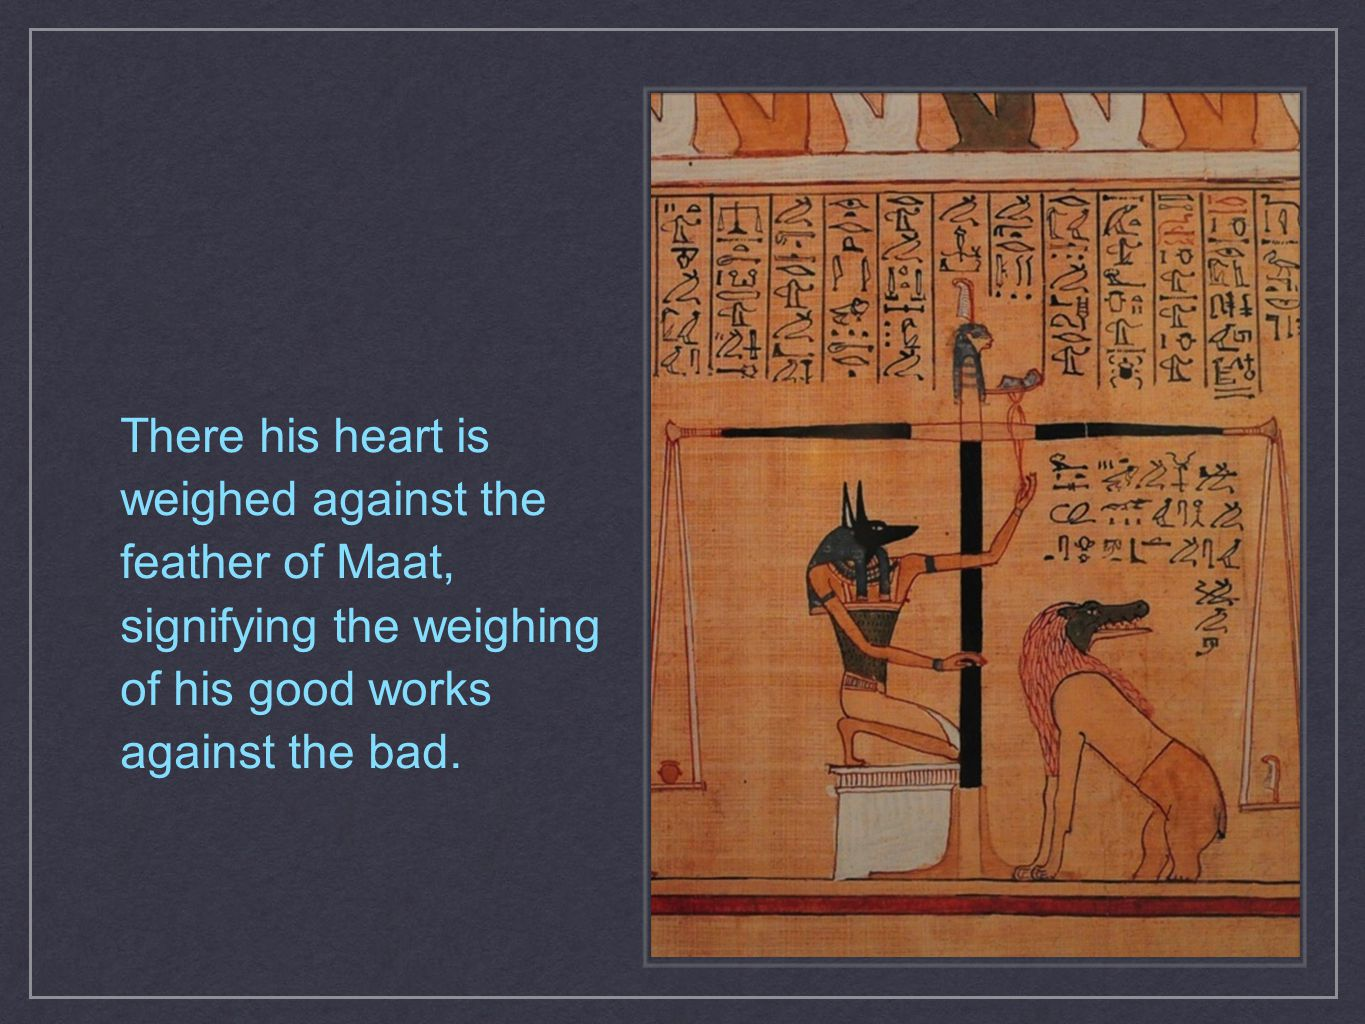 There his heart is weighed against the feather of Maat, signifying the weighing of his good works against the bad.